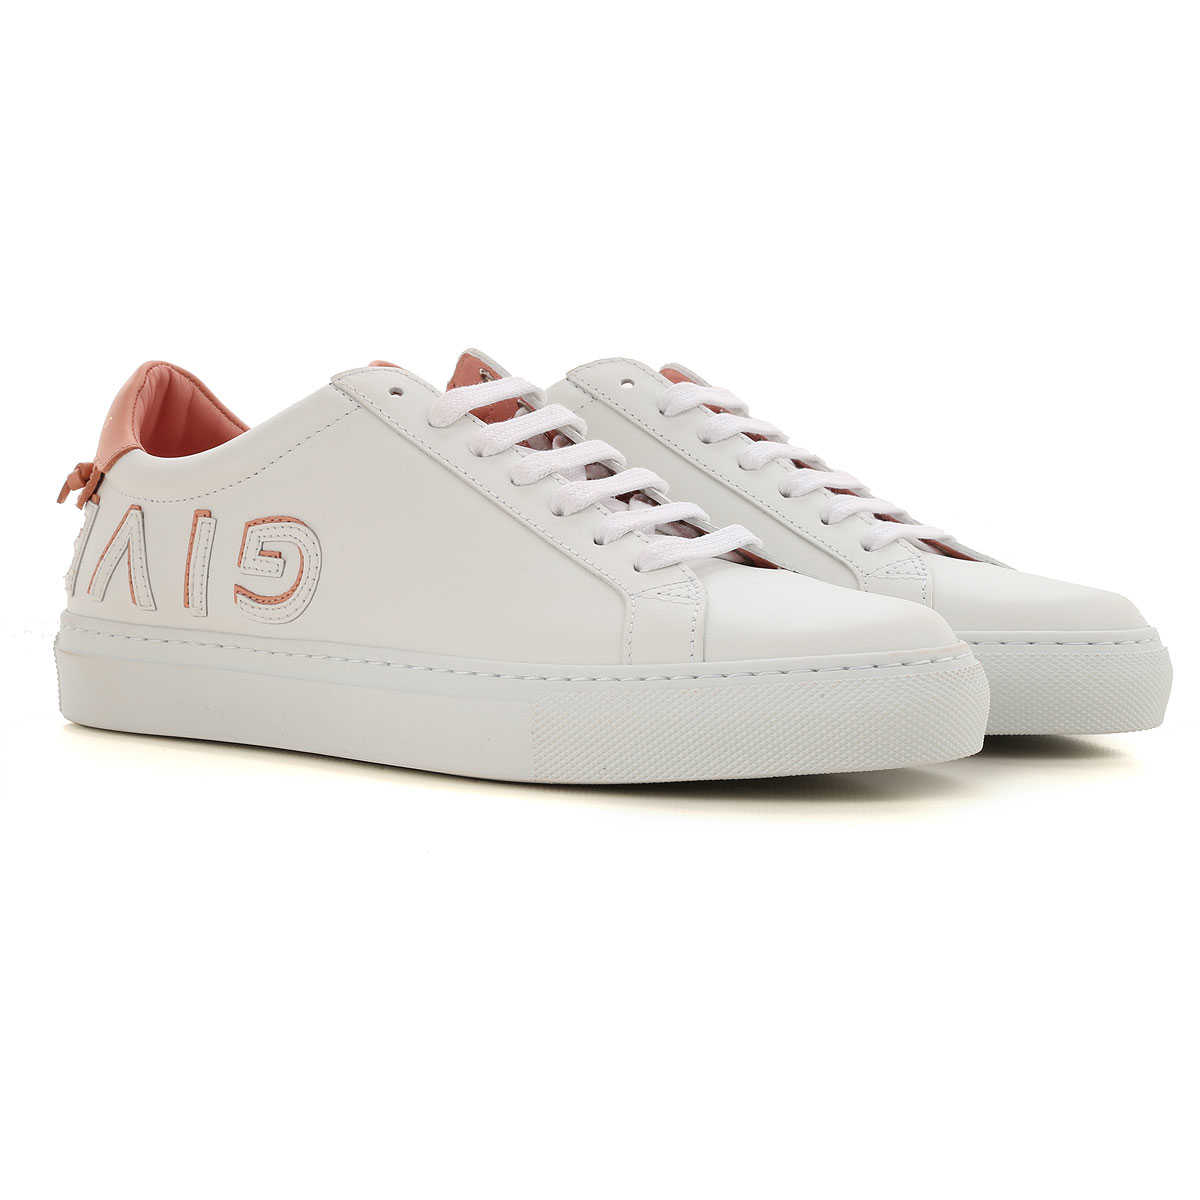 Givenchy Sneakers for Women, White